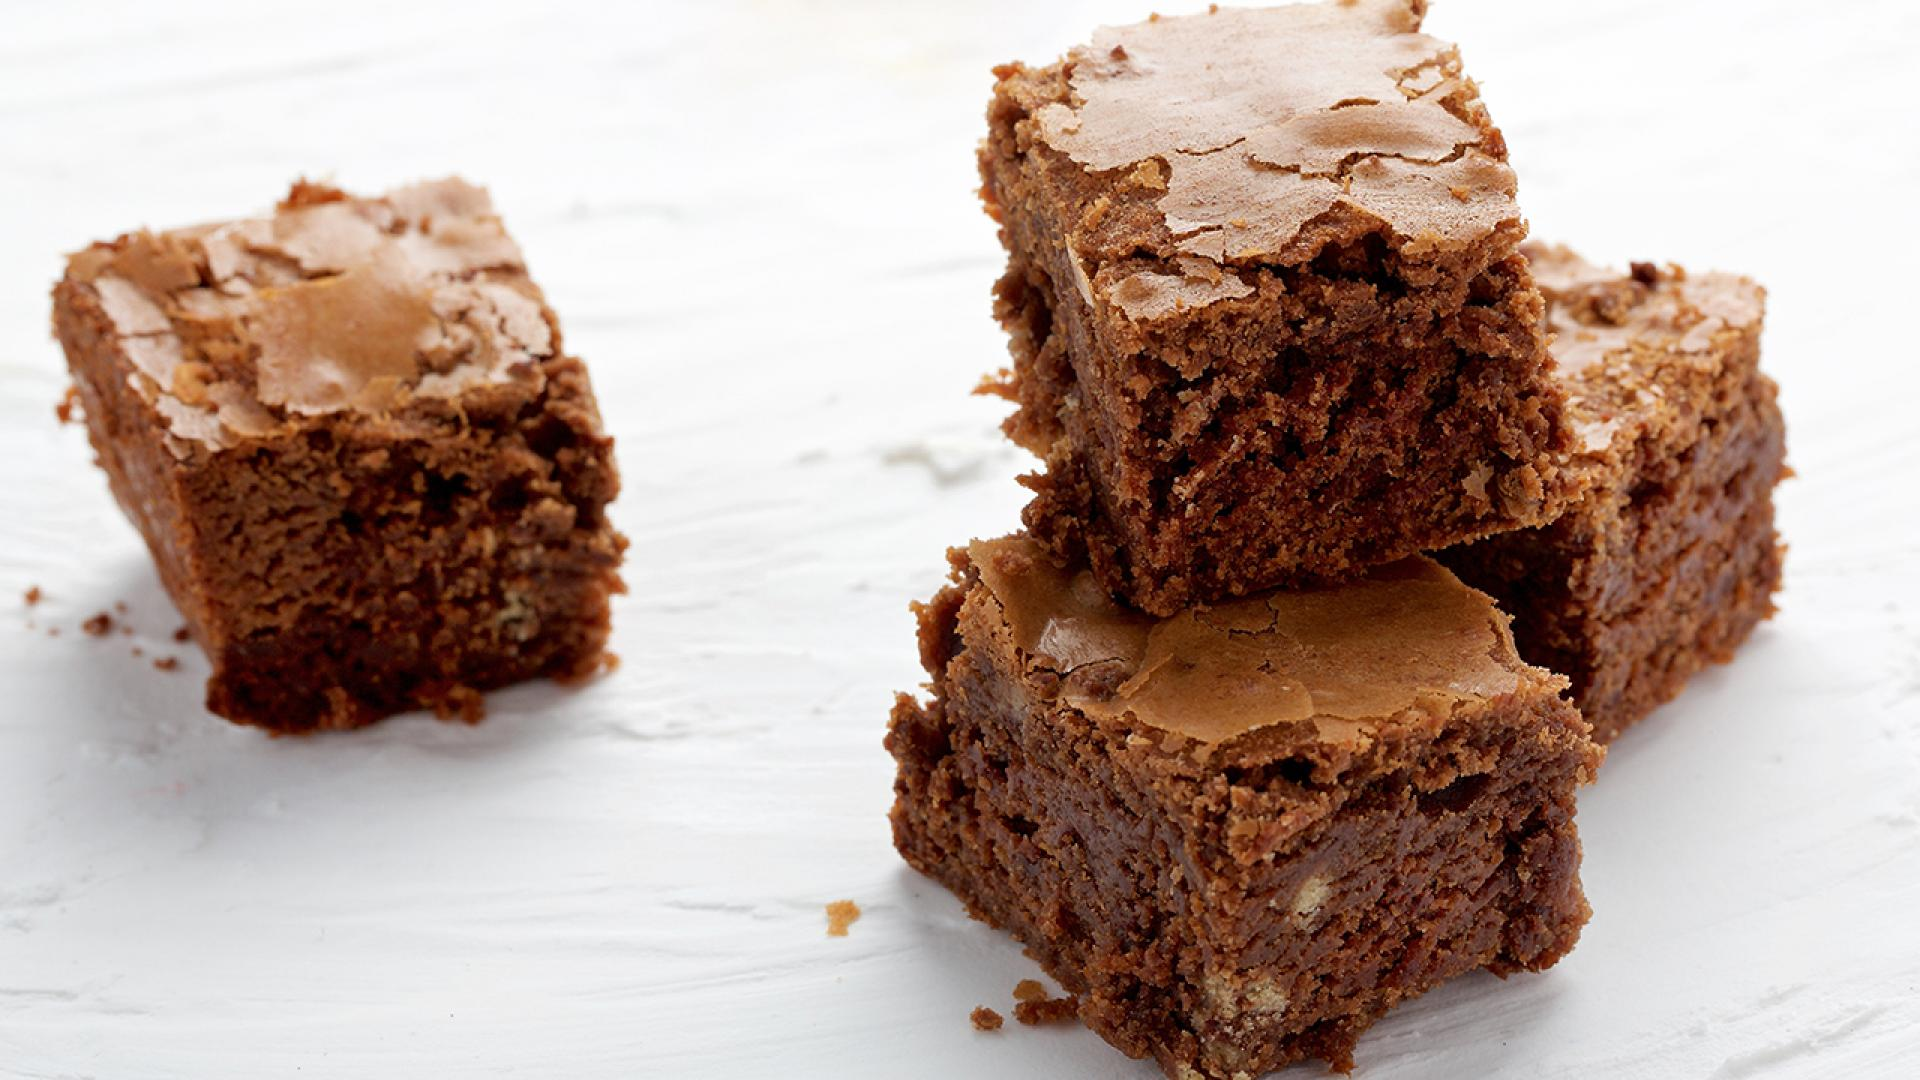 The teen allegedly put the weed-laced brownies in goody bags.